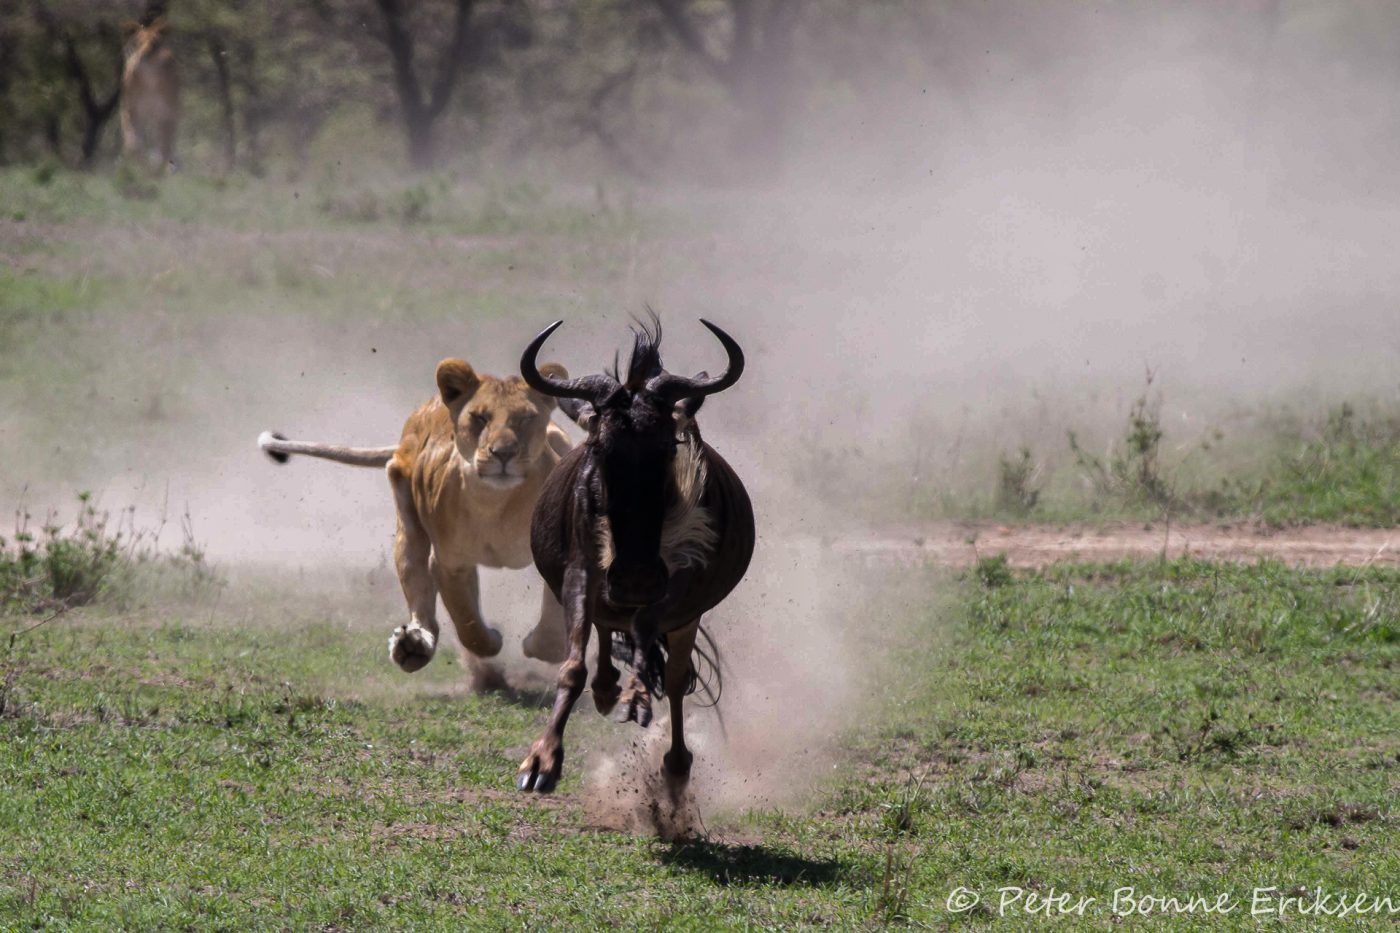 Lion wilderbeest chase